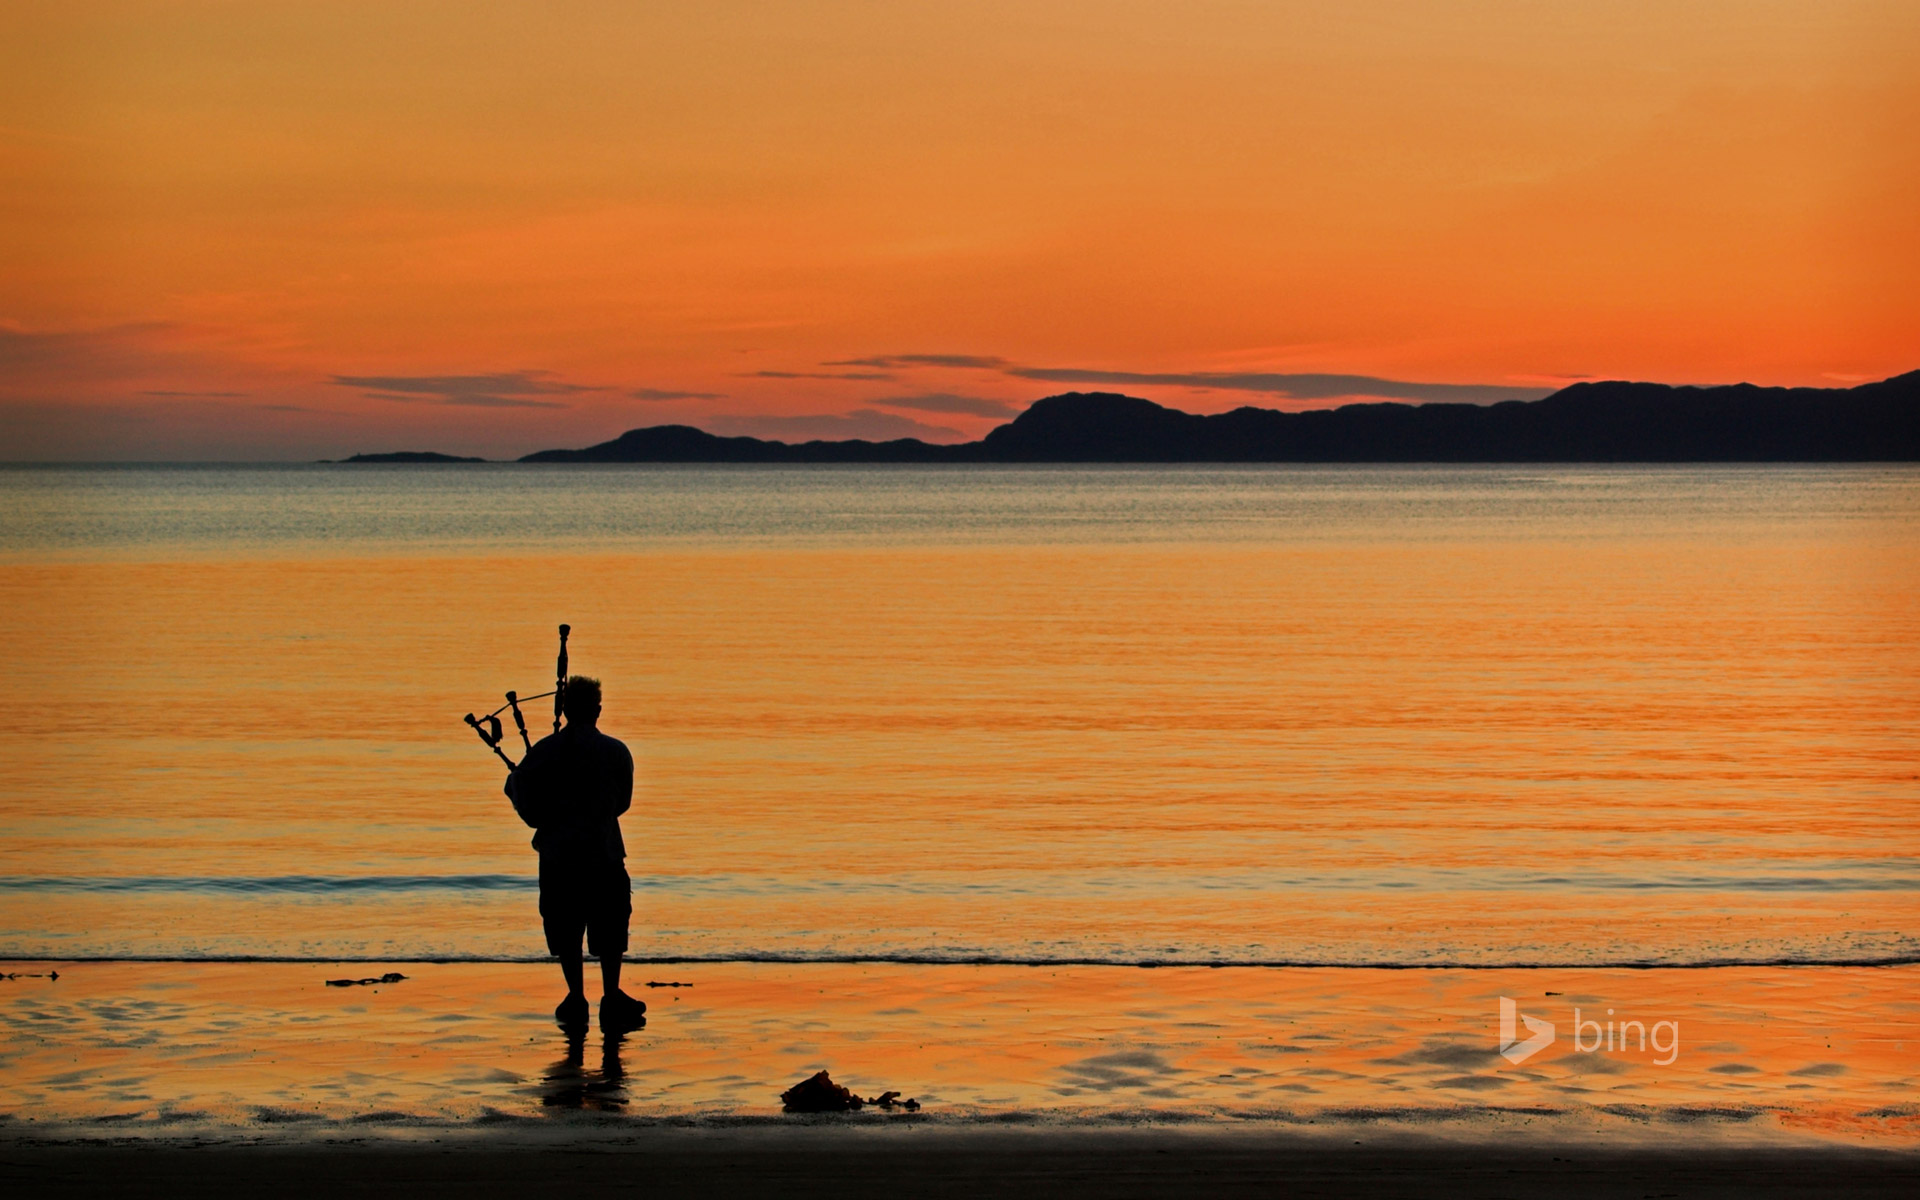 A bagpiper on Arisaig beach in Scotland